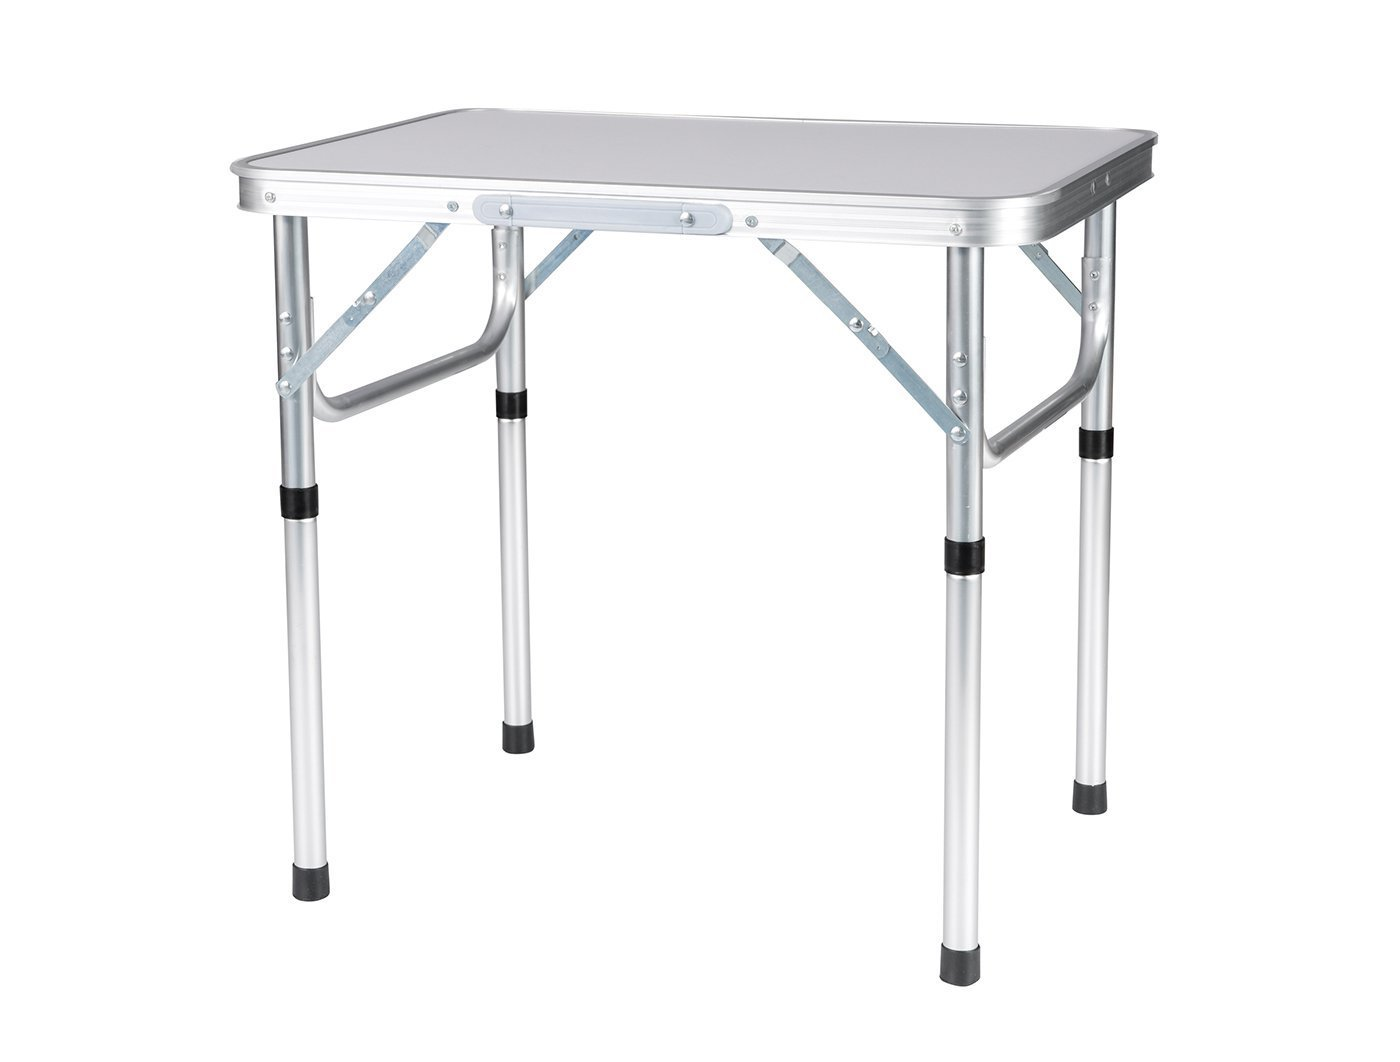 Folding Aluminum Height Adjustable Table Picnic Party Dining Camping Table by